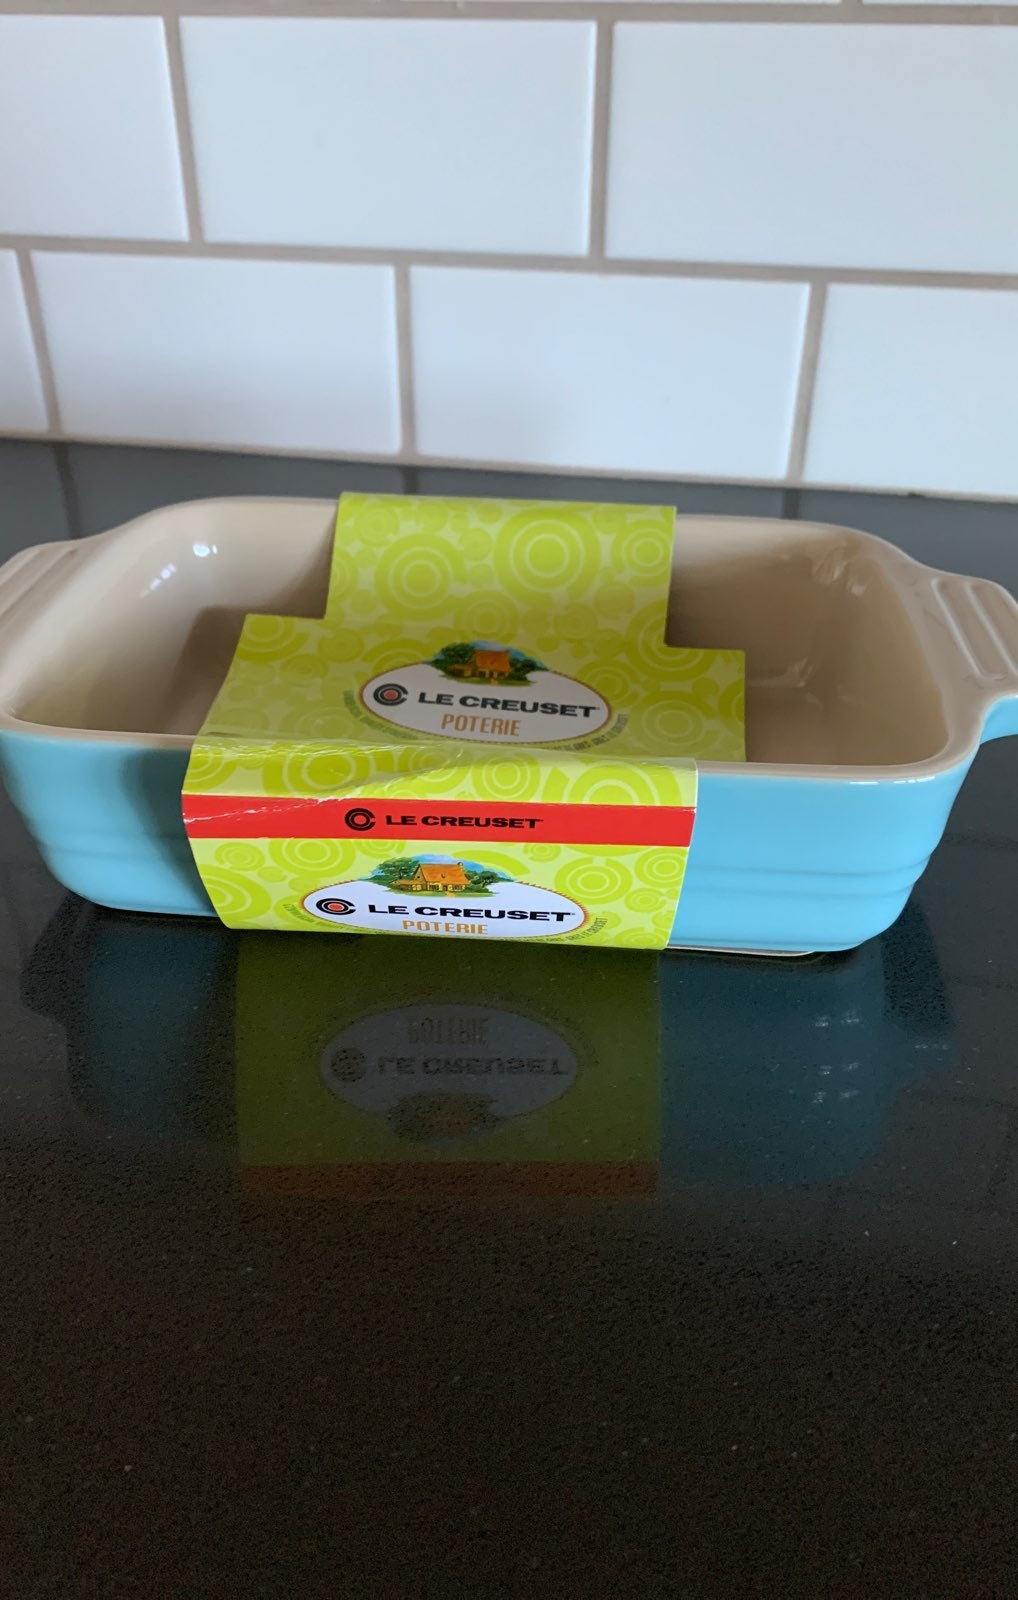 Le Creuset rectangular baking dish